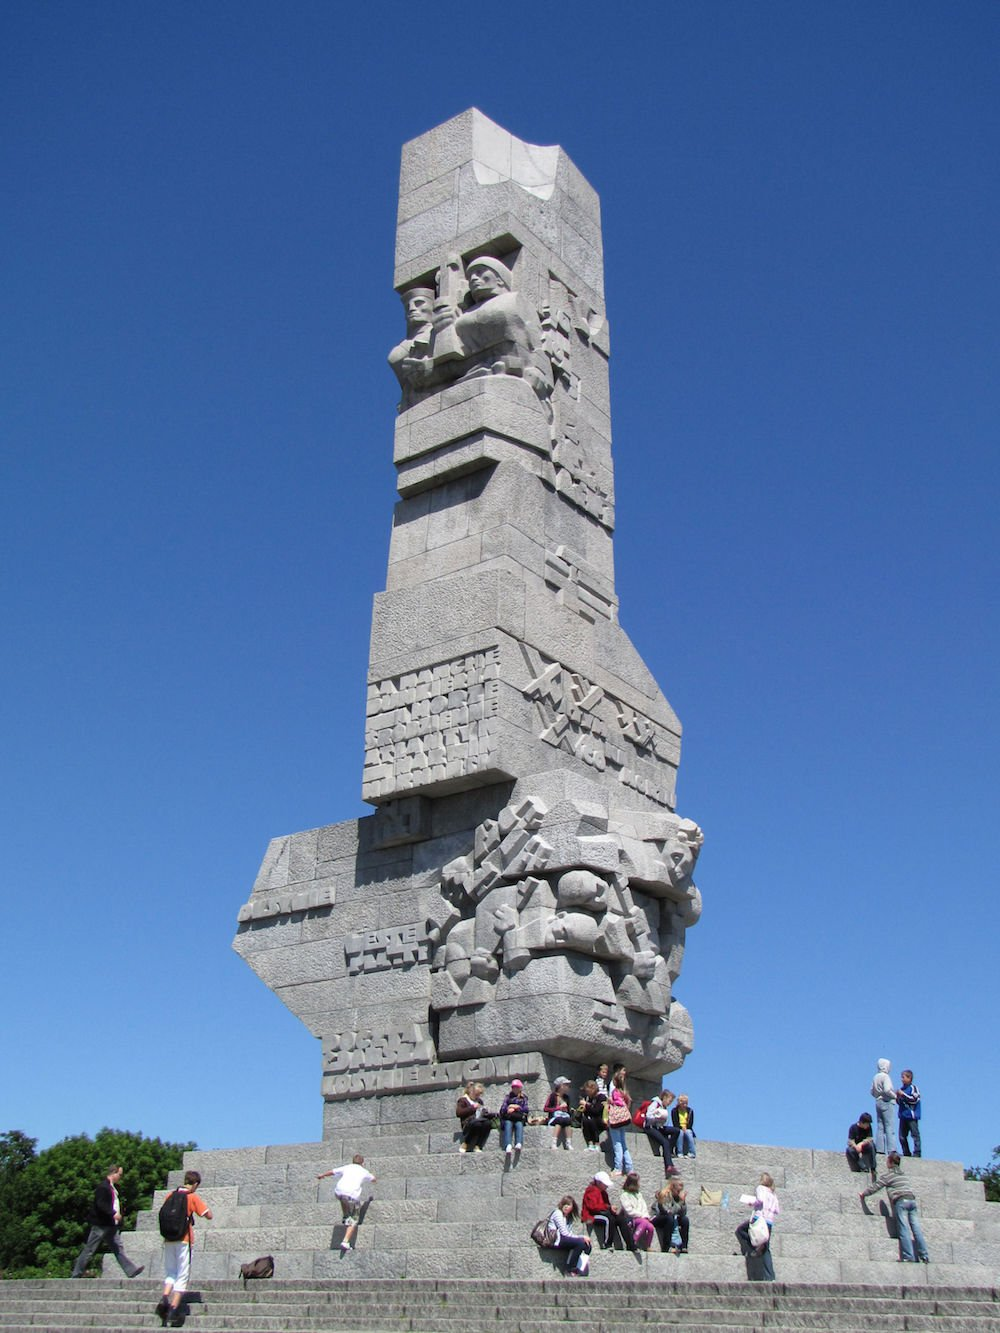 Monument to the Defenders of the Coast on the Westerplatte peninsula in Gdańsk. image: Holger Weinandt under a CC licence